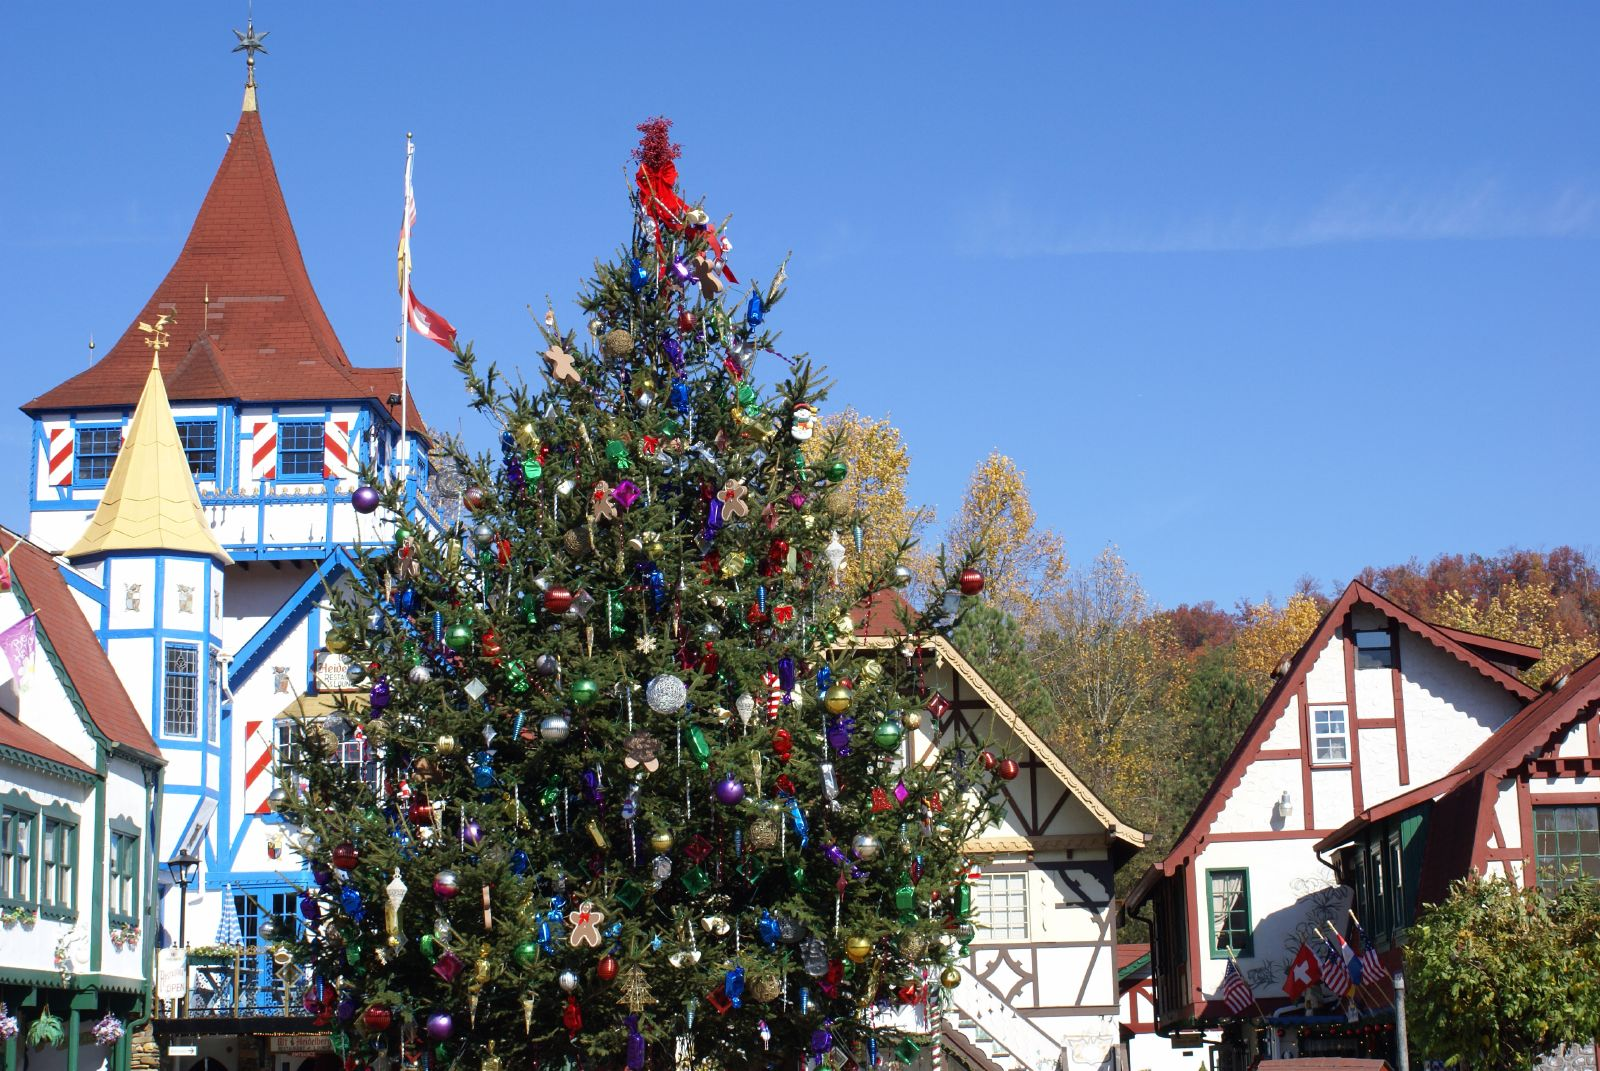 Town Square Christmas Tree In Helen, GA.